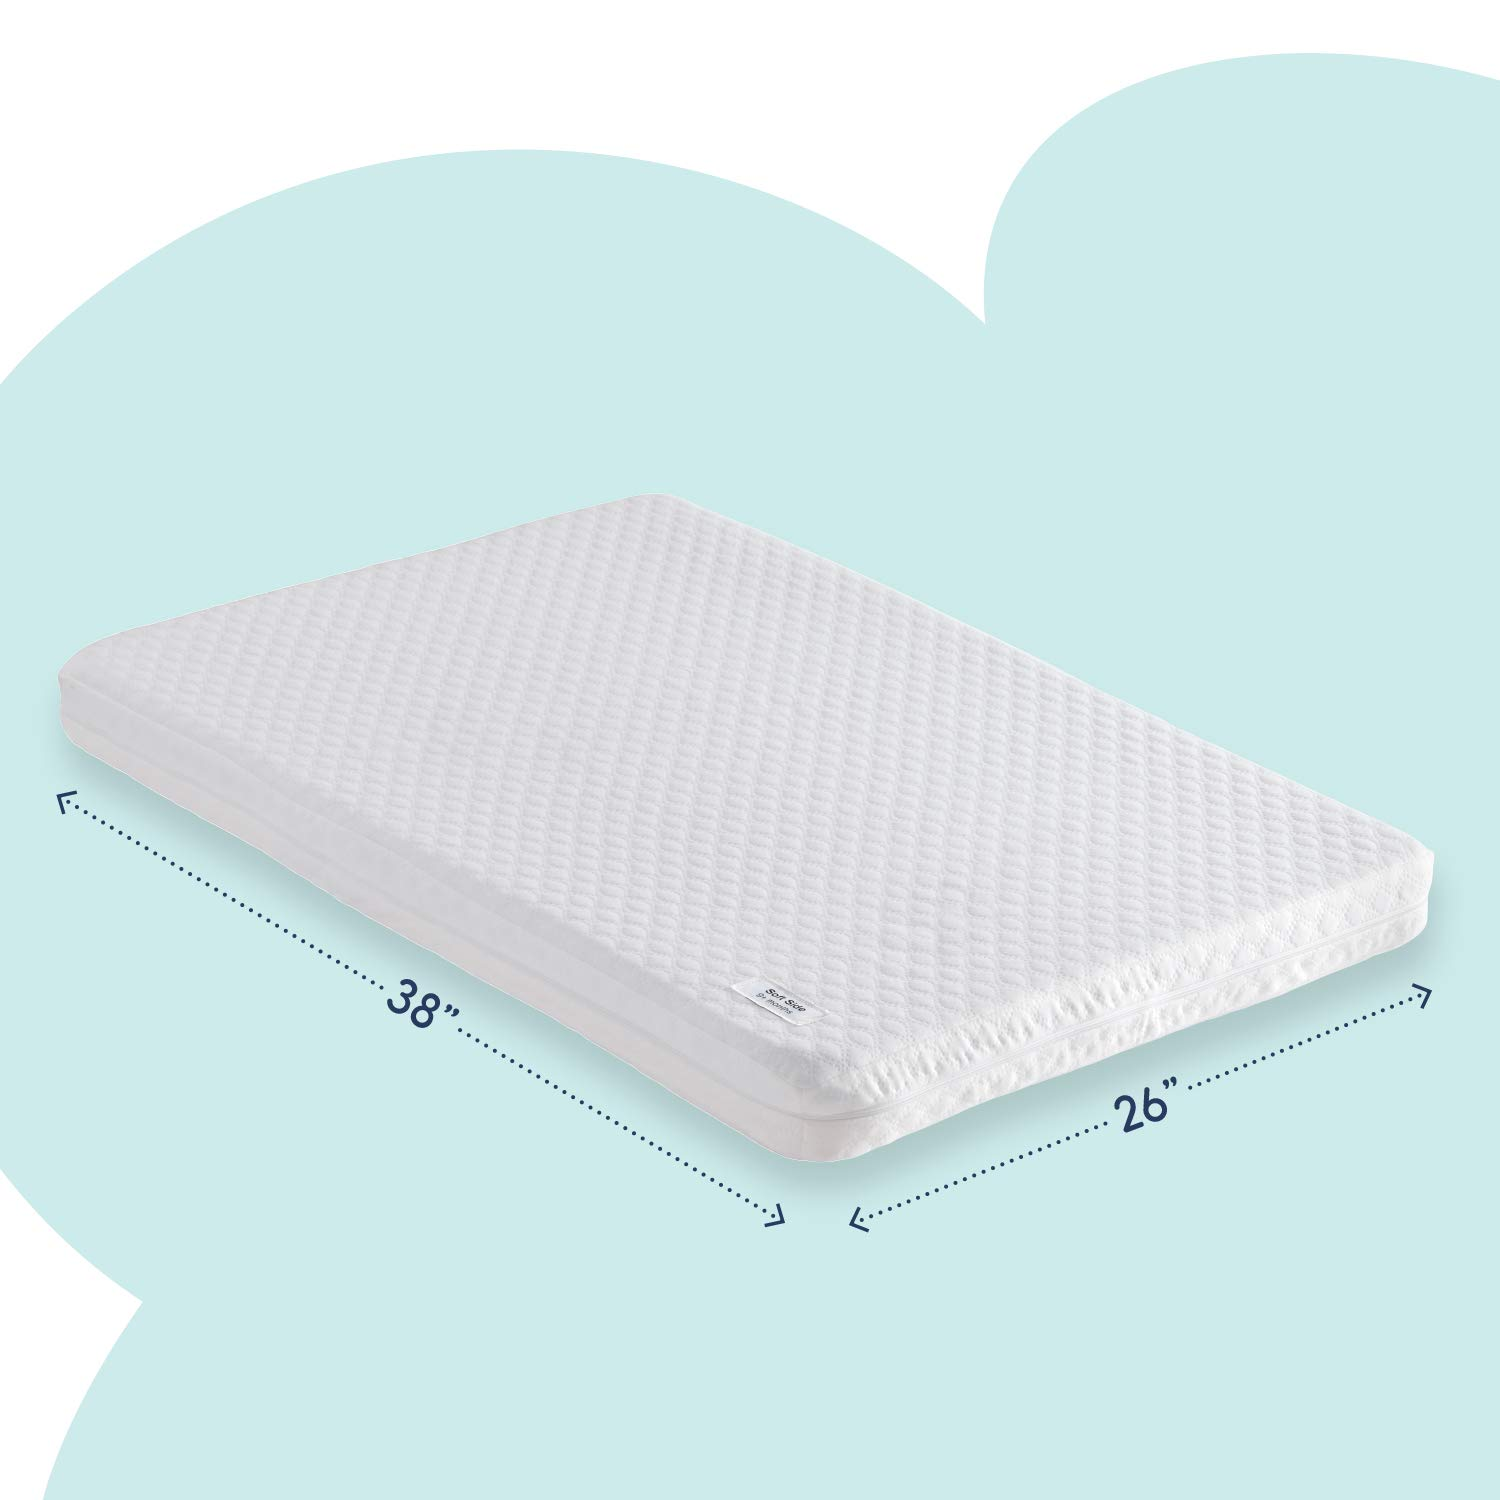 hiccapop Dual Playard Mattress